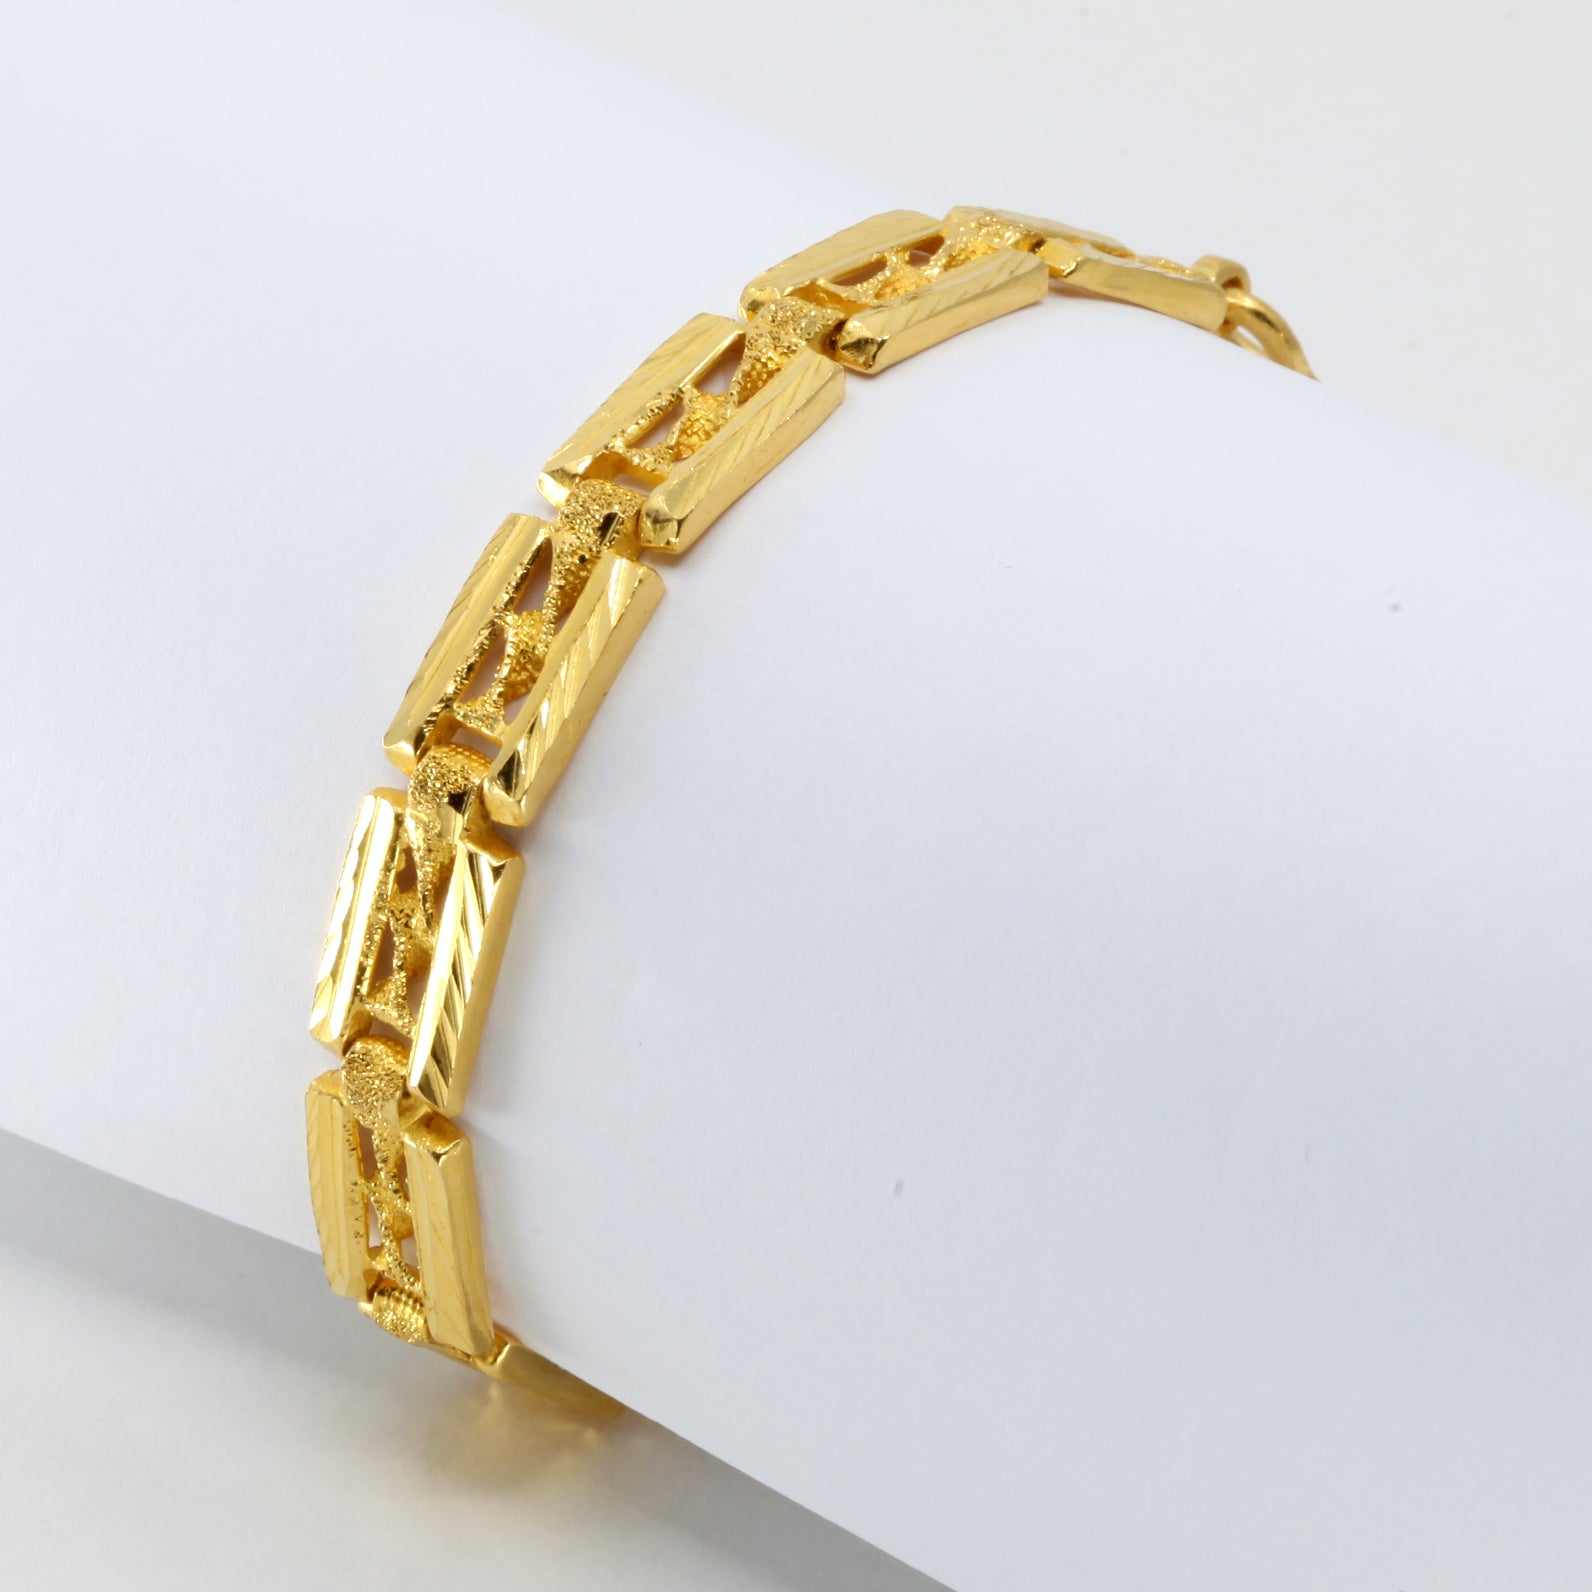 24K Solid Yellow Gold Men Bracelet 24 Grams